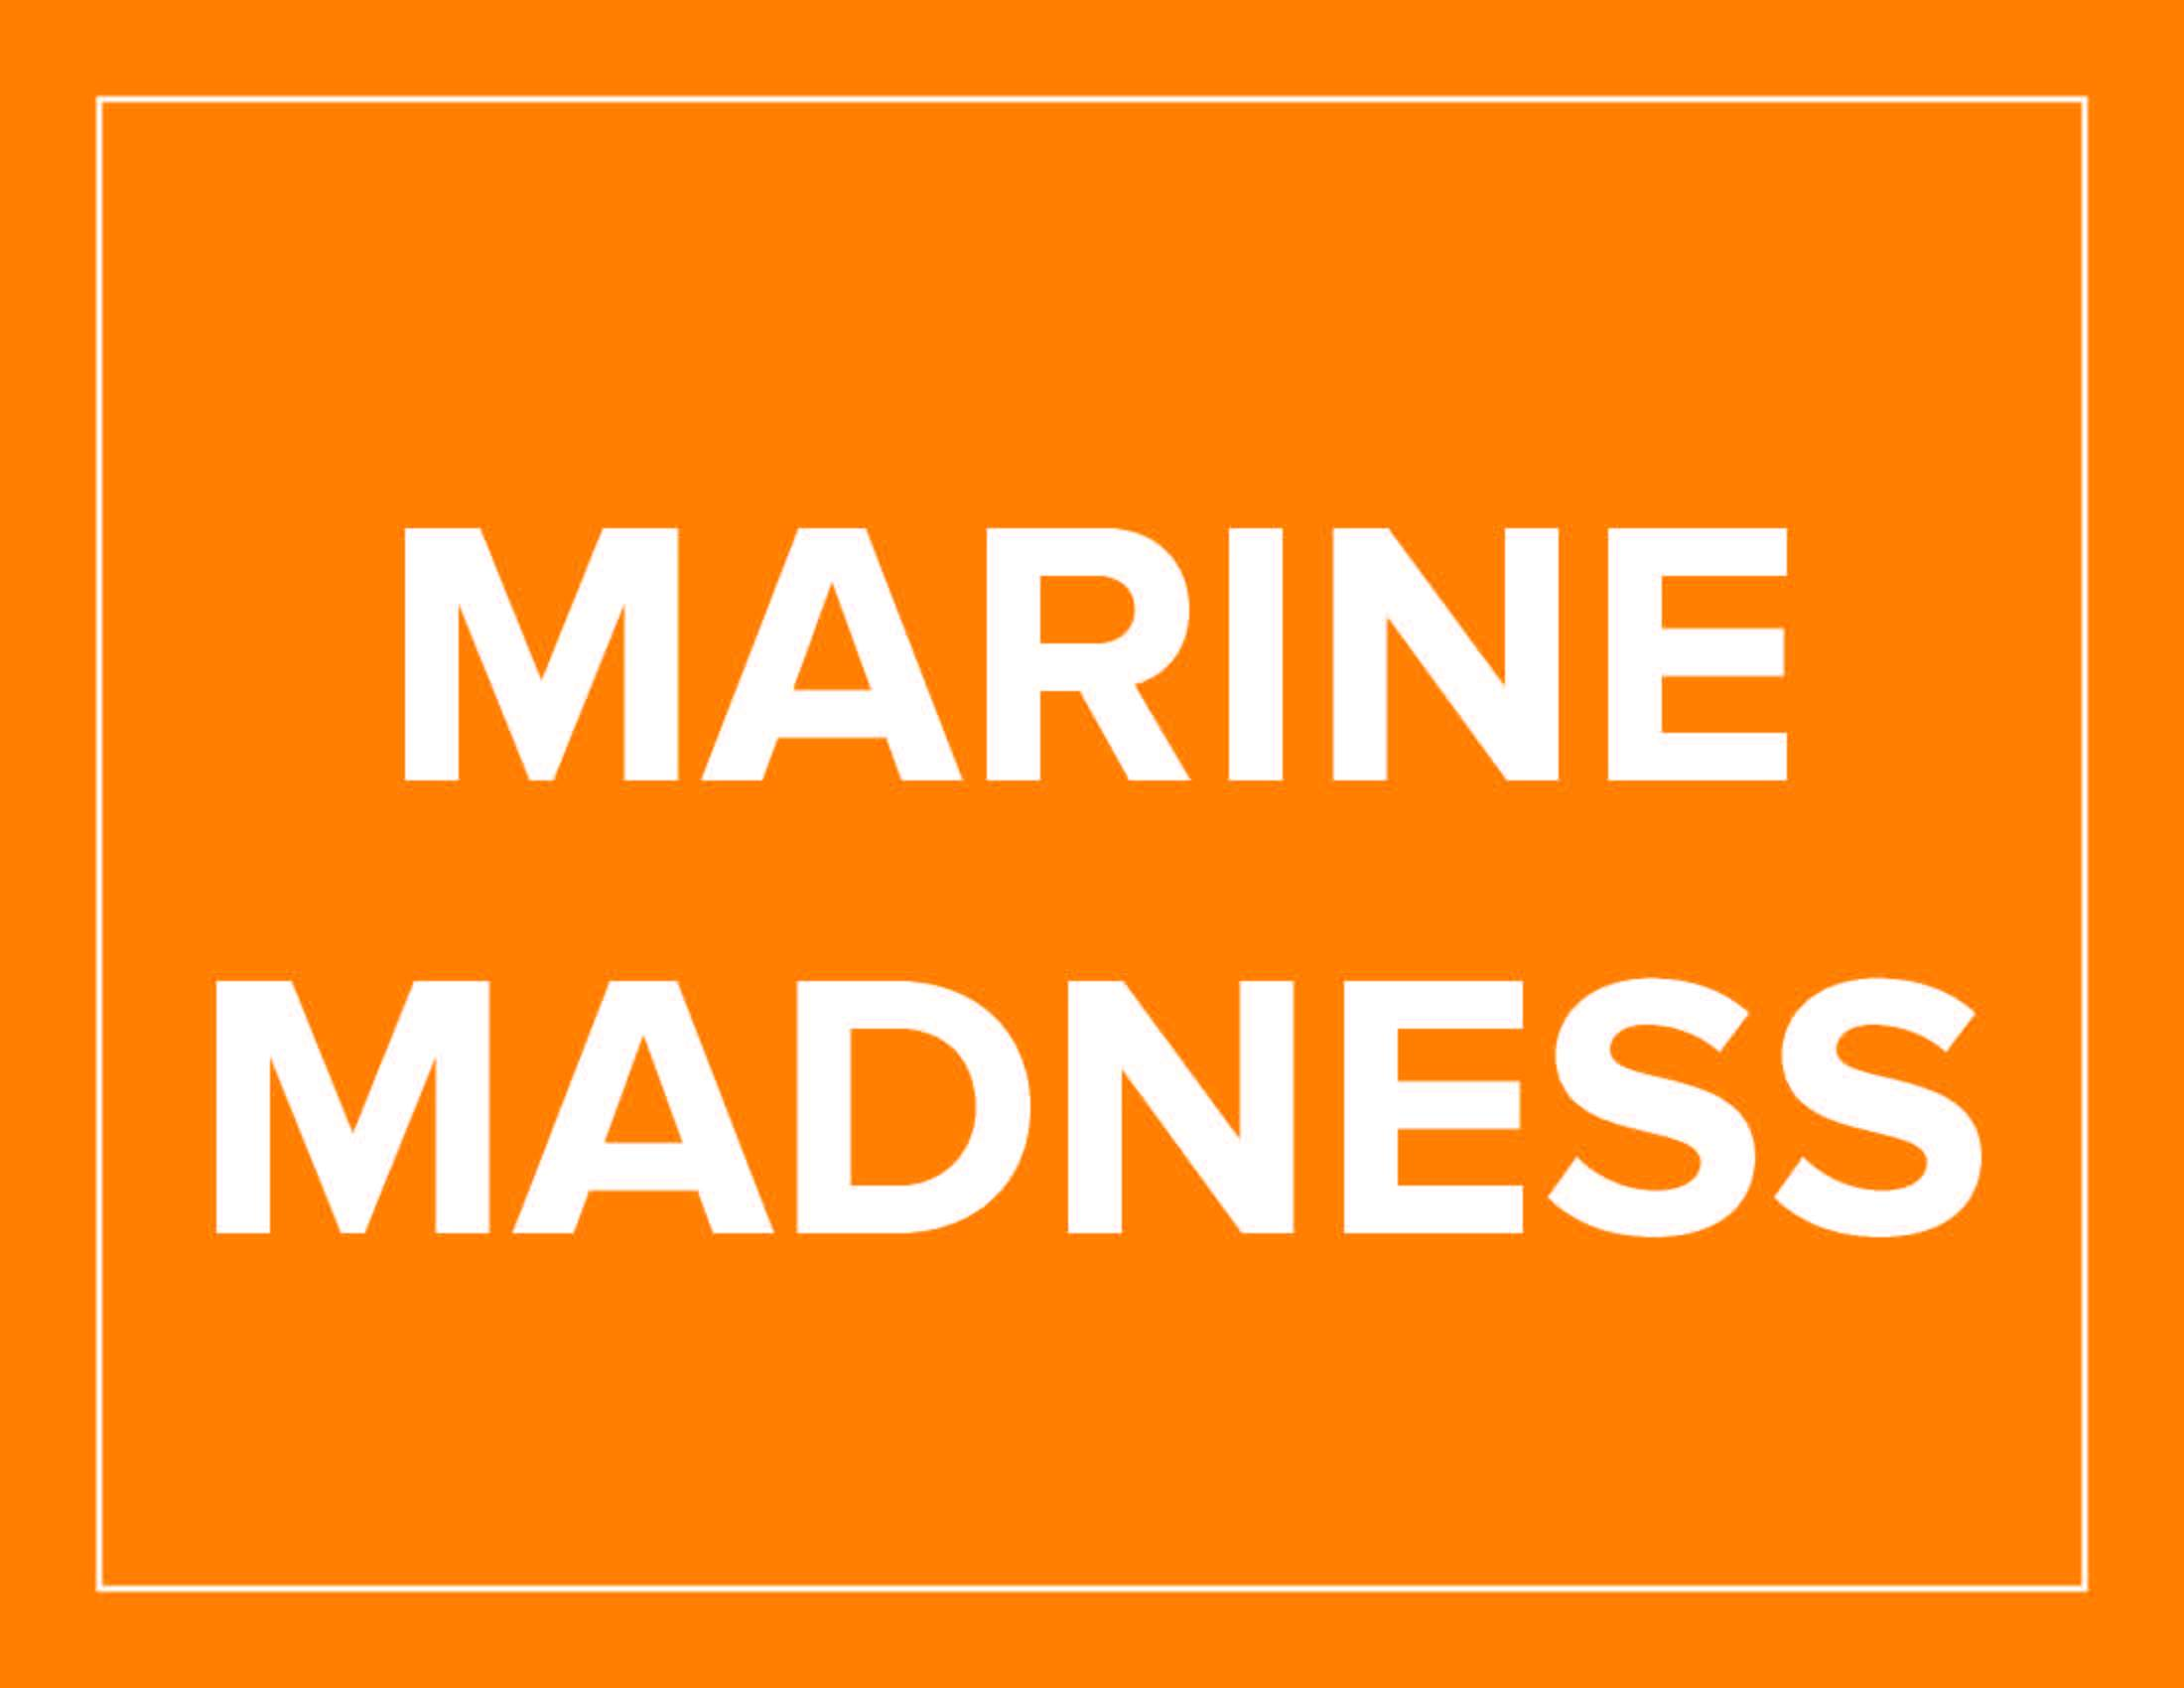 Marine Madness July 19-20, 2021 Grades 1 - 4